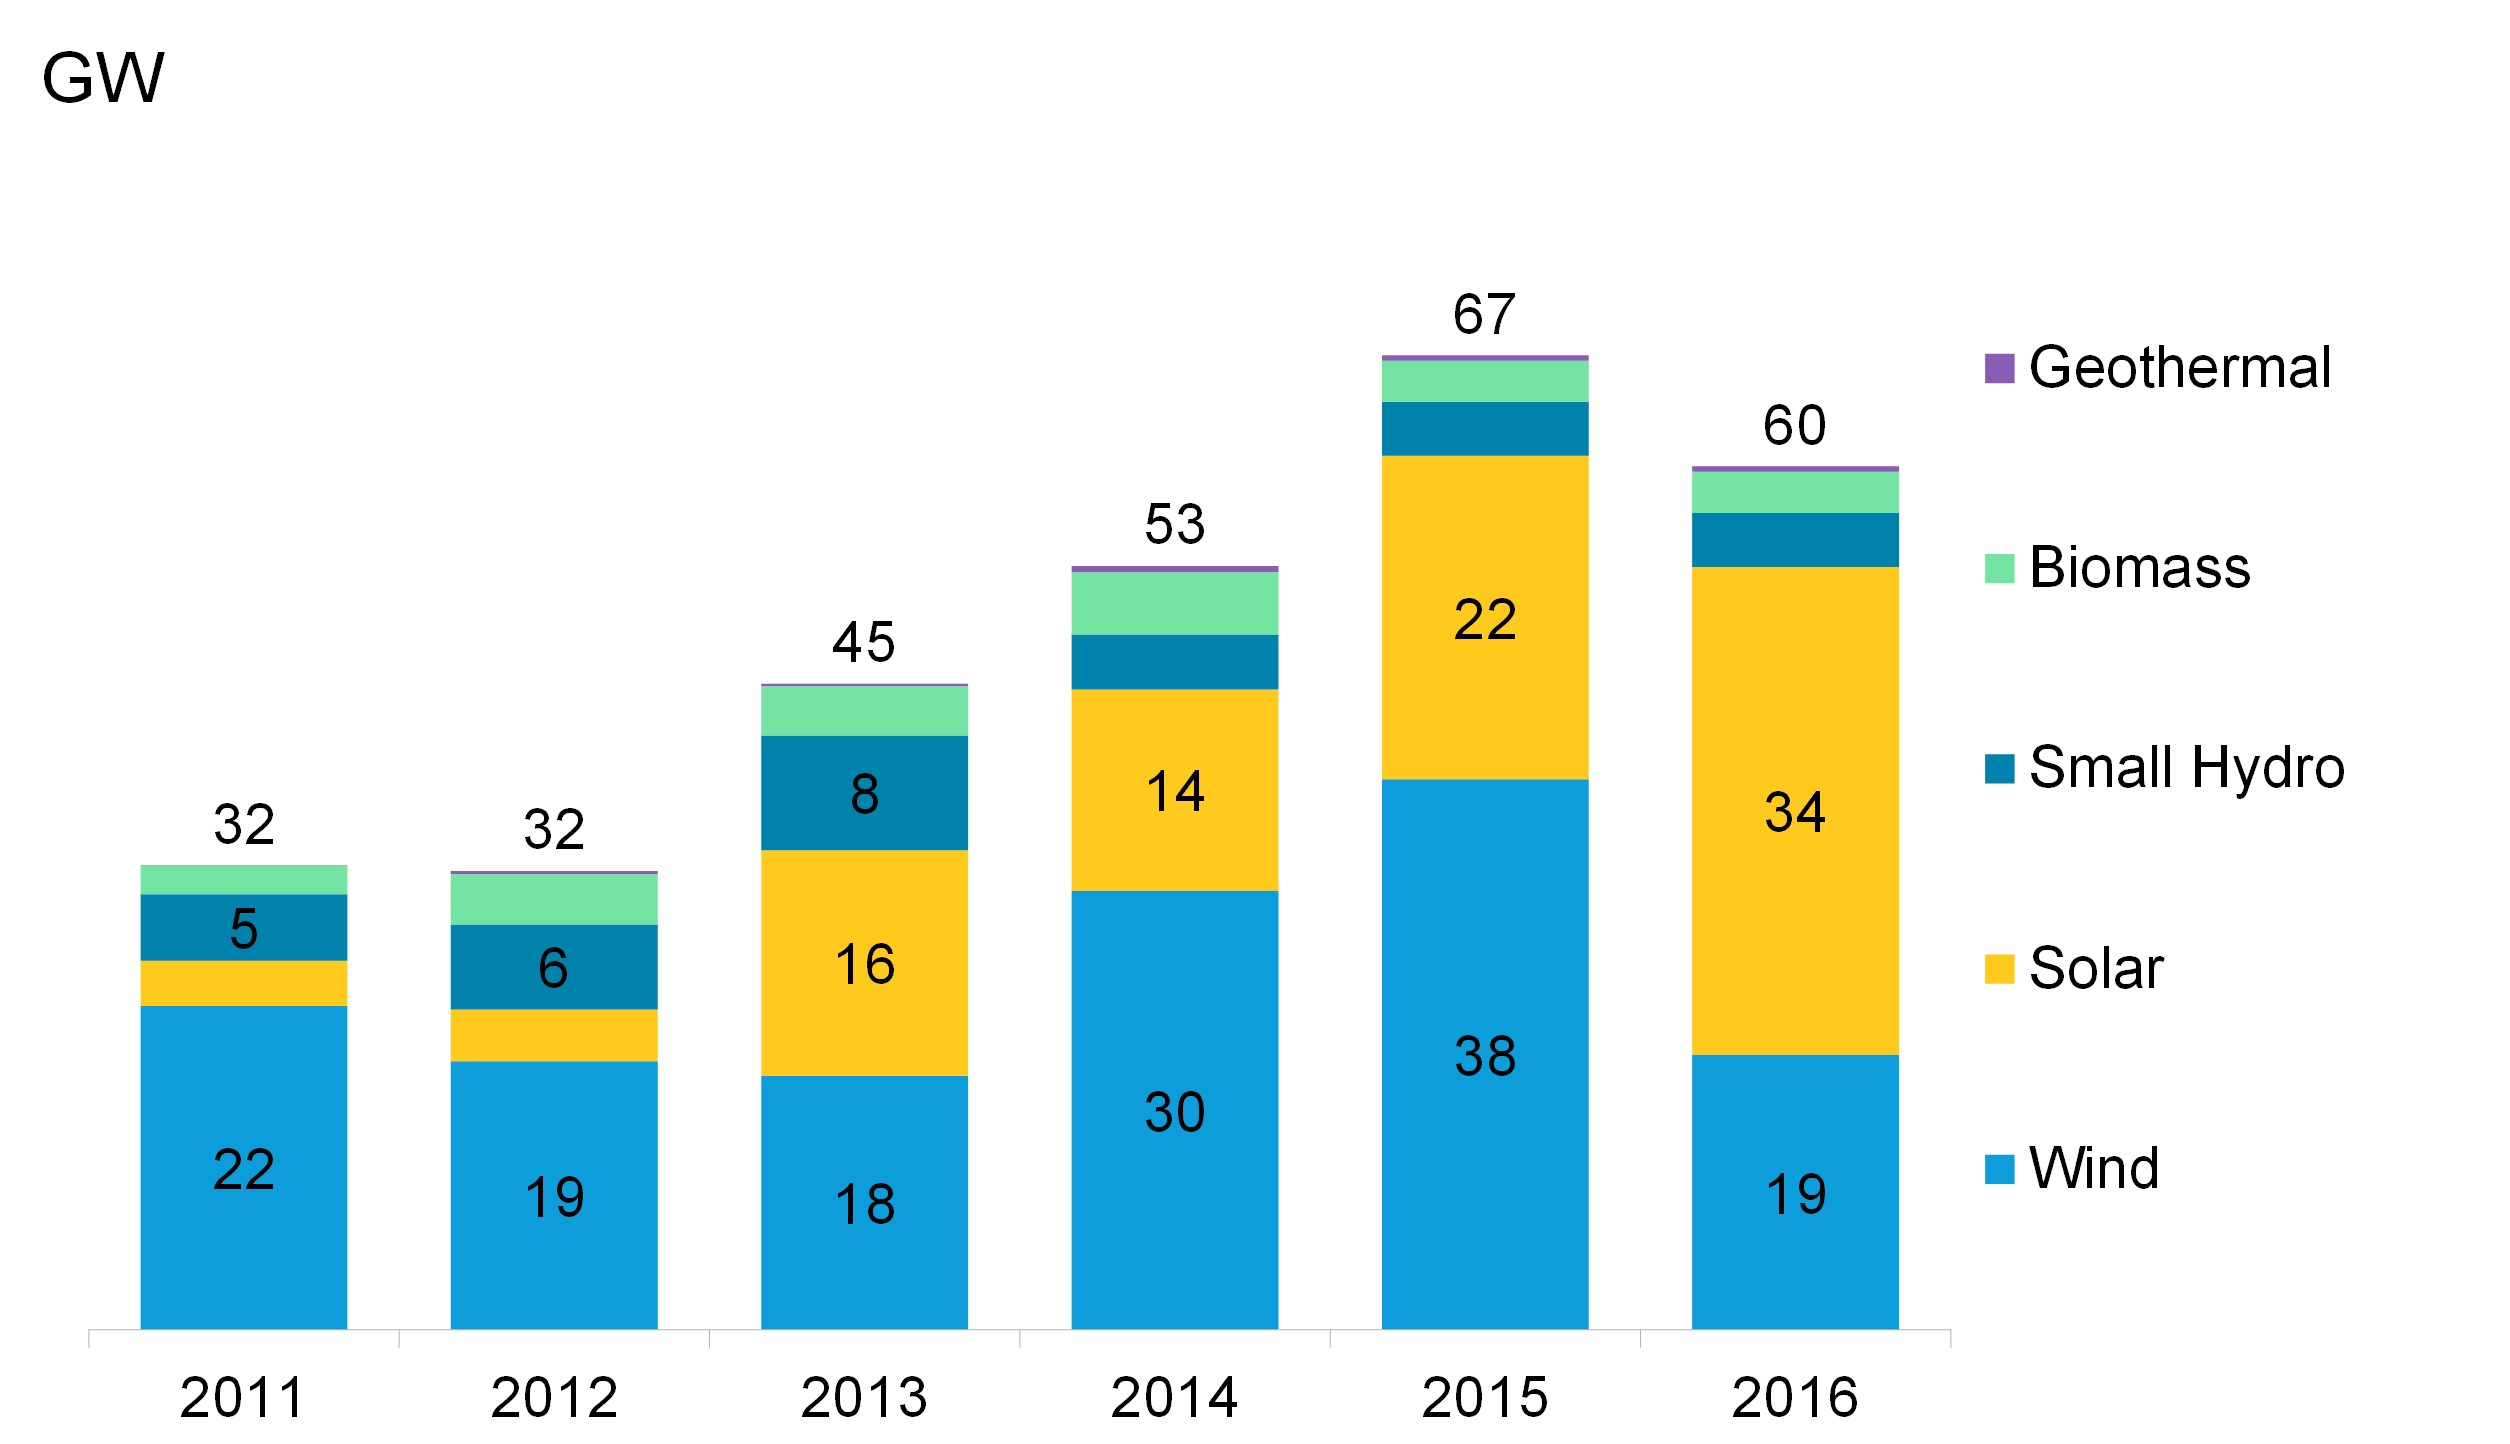 Overall, solar was said to have accounted for 19% of all new generating capacity added in Climatescope countries in 2016, up from 10.6% in 2015 and 2% in 2011. Image: BNEF